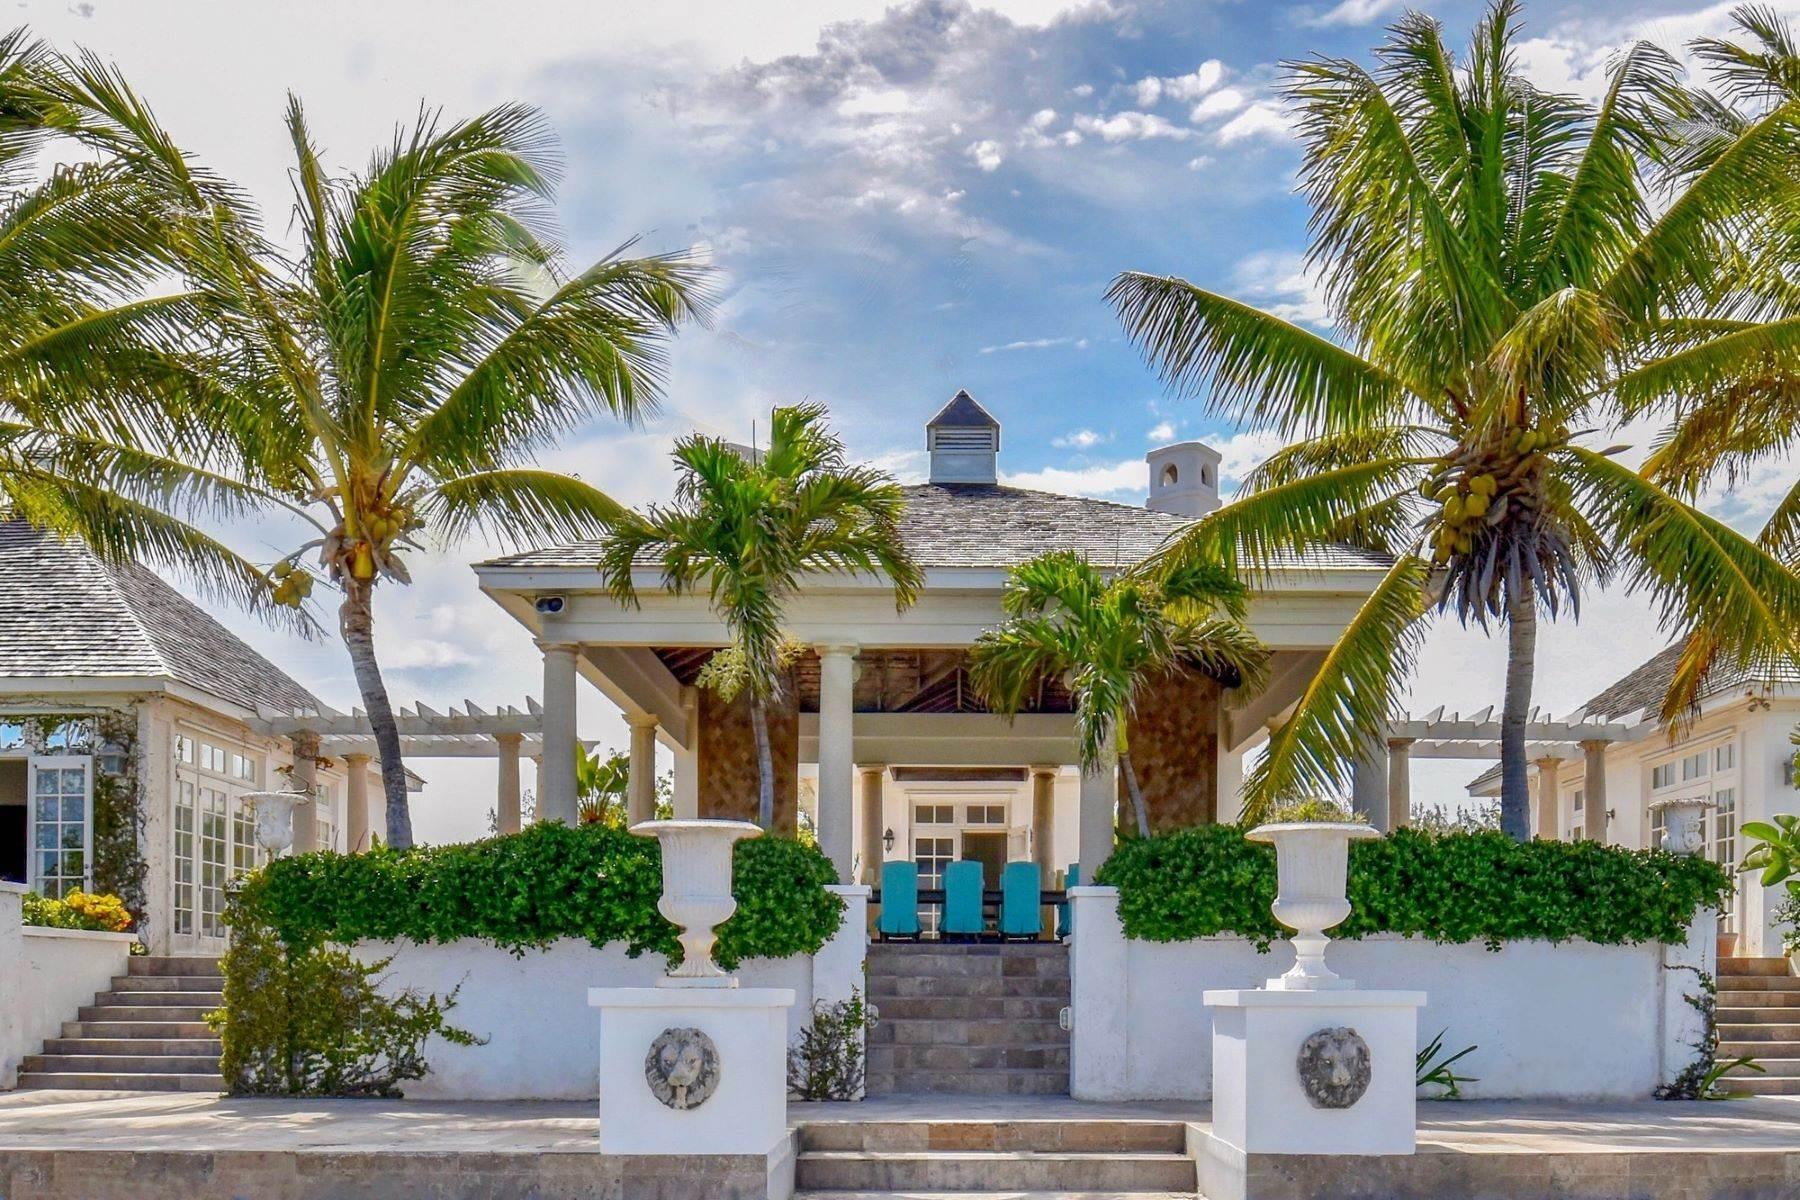 Single Family Homes for Sale at Windermere Island, Eleuthera Bahamas